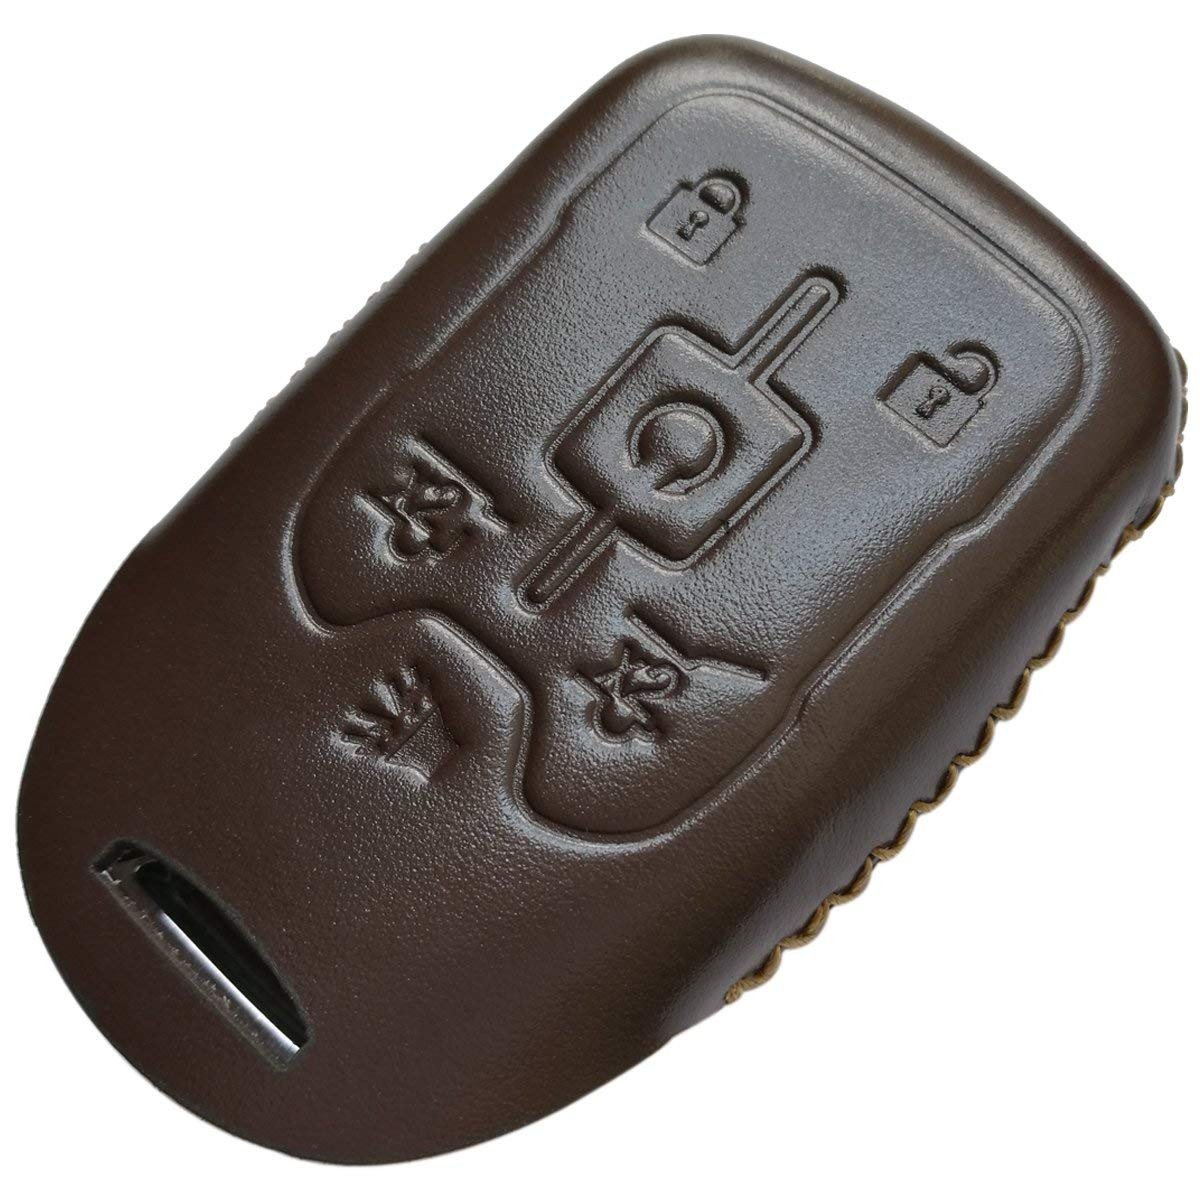 Coolbestda Leather Key Fob Remote Keyless Cover Case Protector Skin Jacket for 2017 2016 2015 Chevrolet Suburban LTZ Tahoe GMC Yukon Acadia Brown